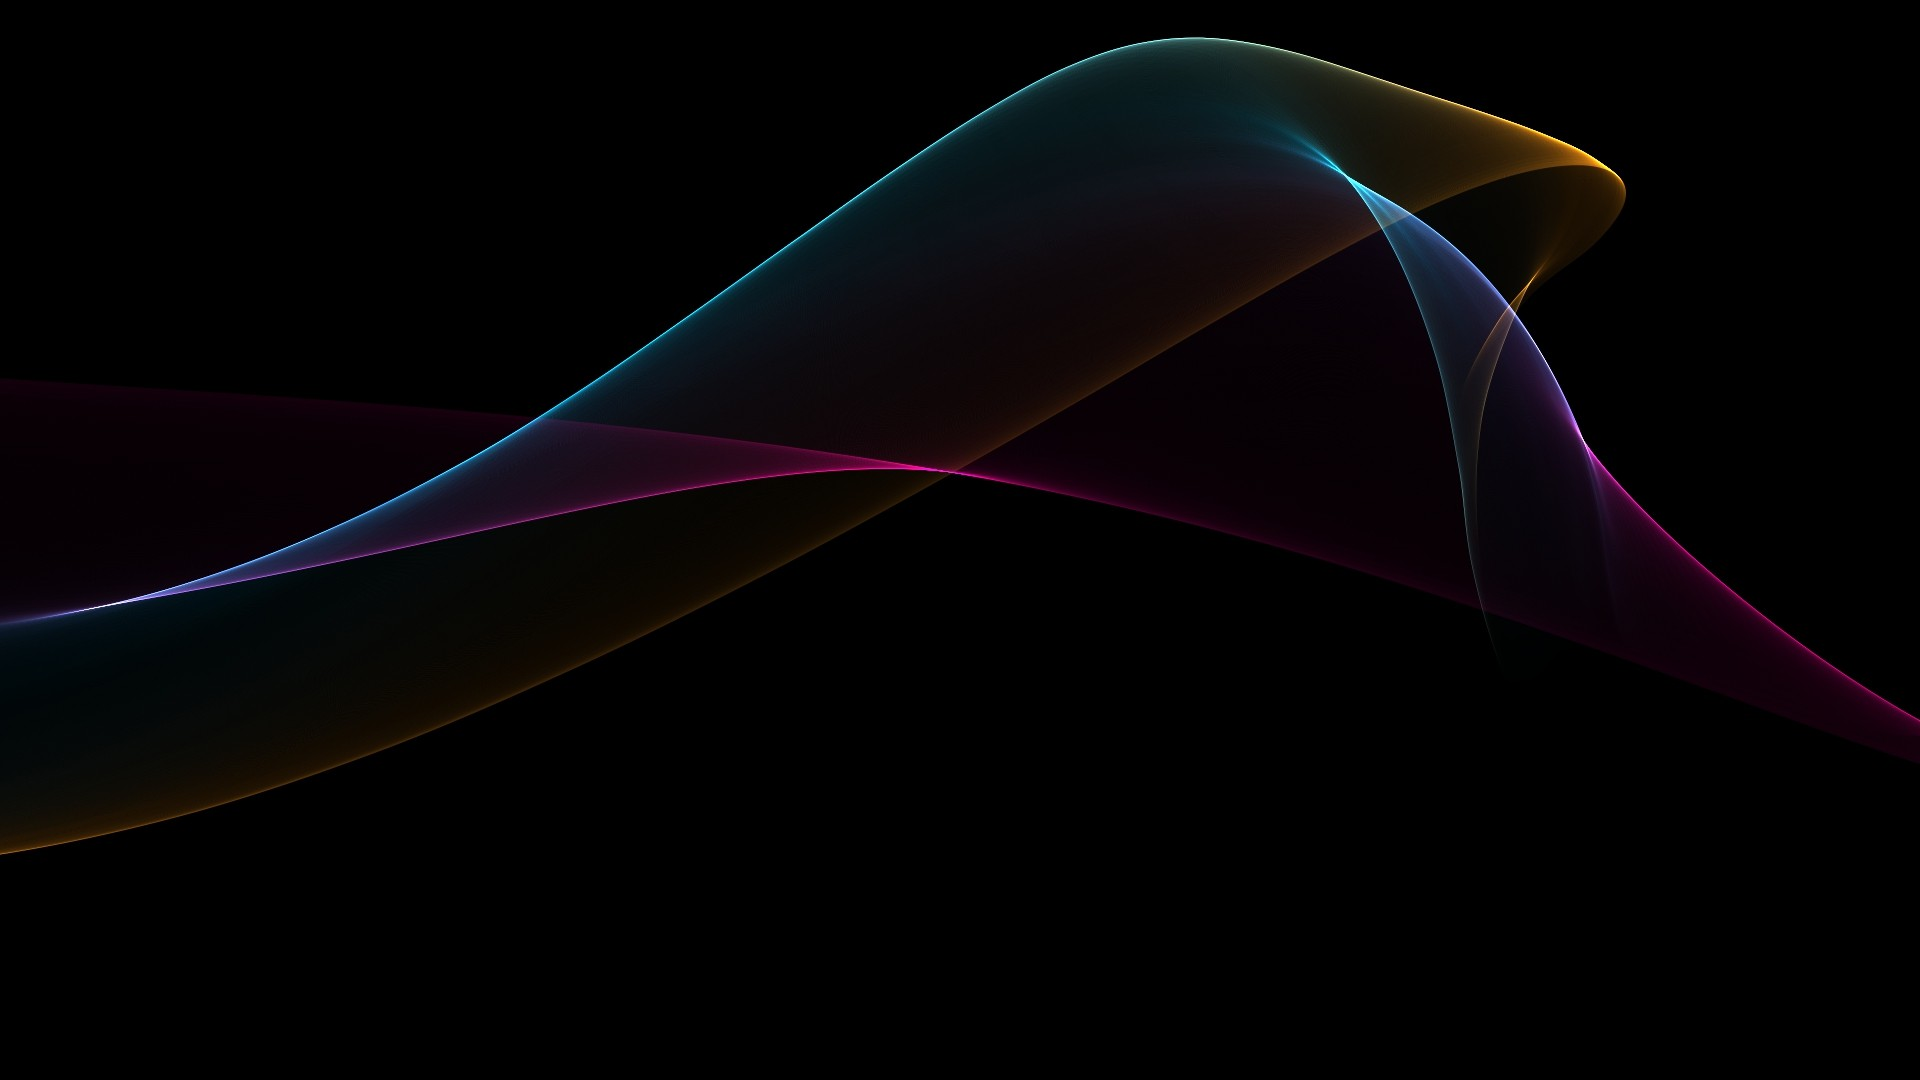 Abstract Black Dark Wallpapers Background Background1 1920x1080